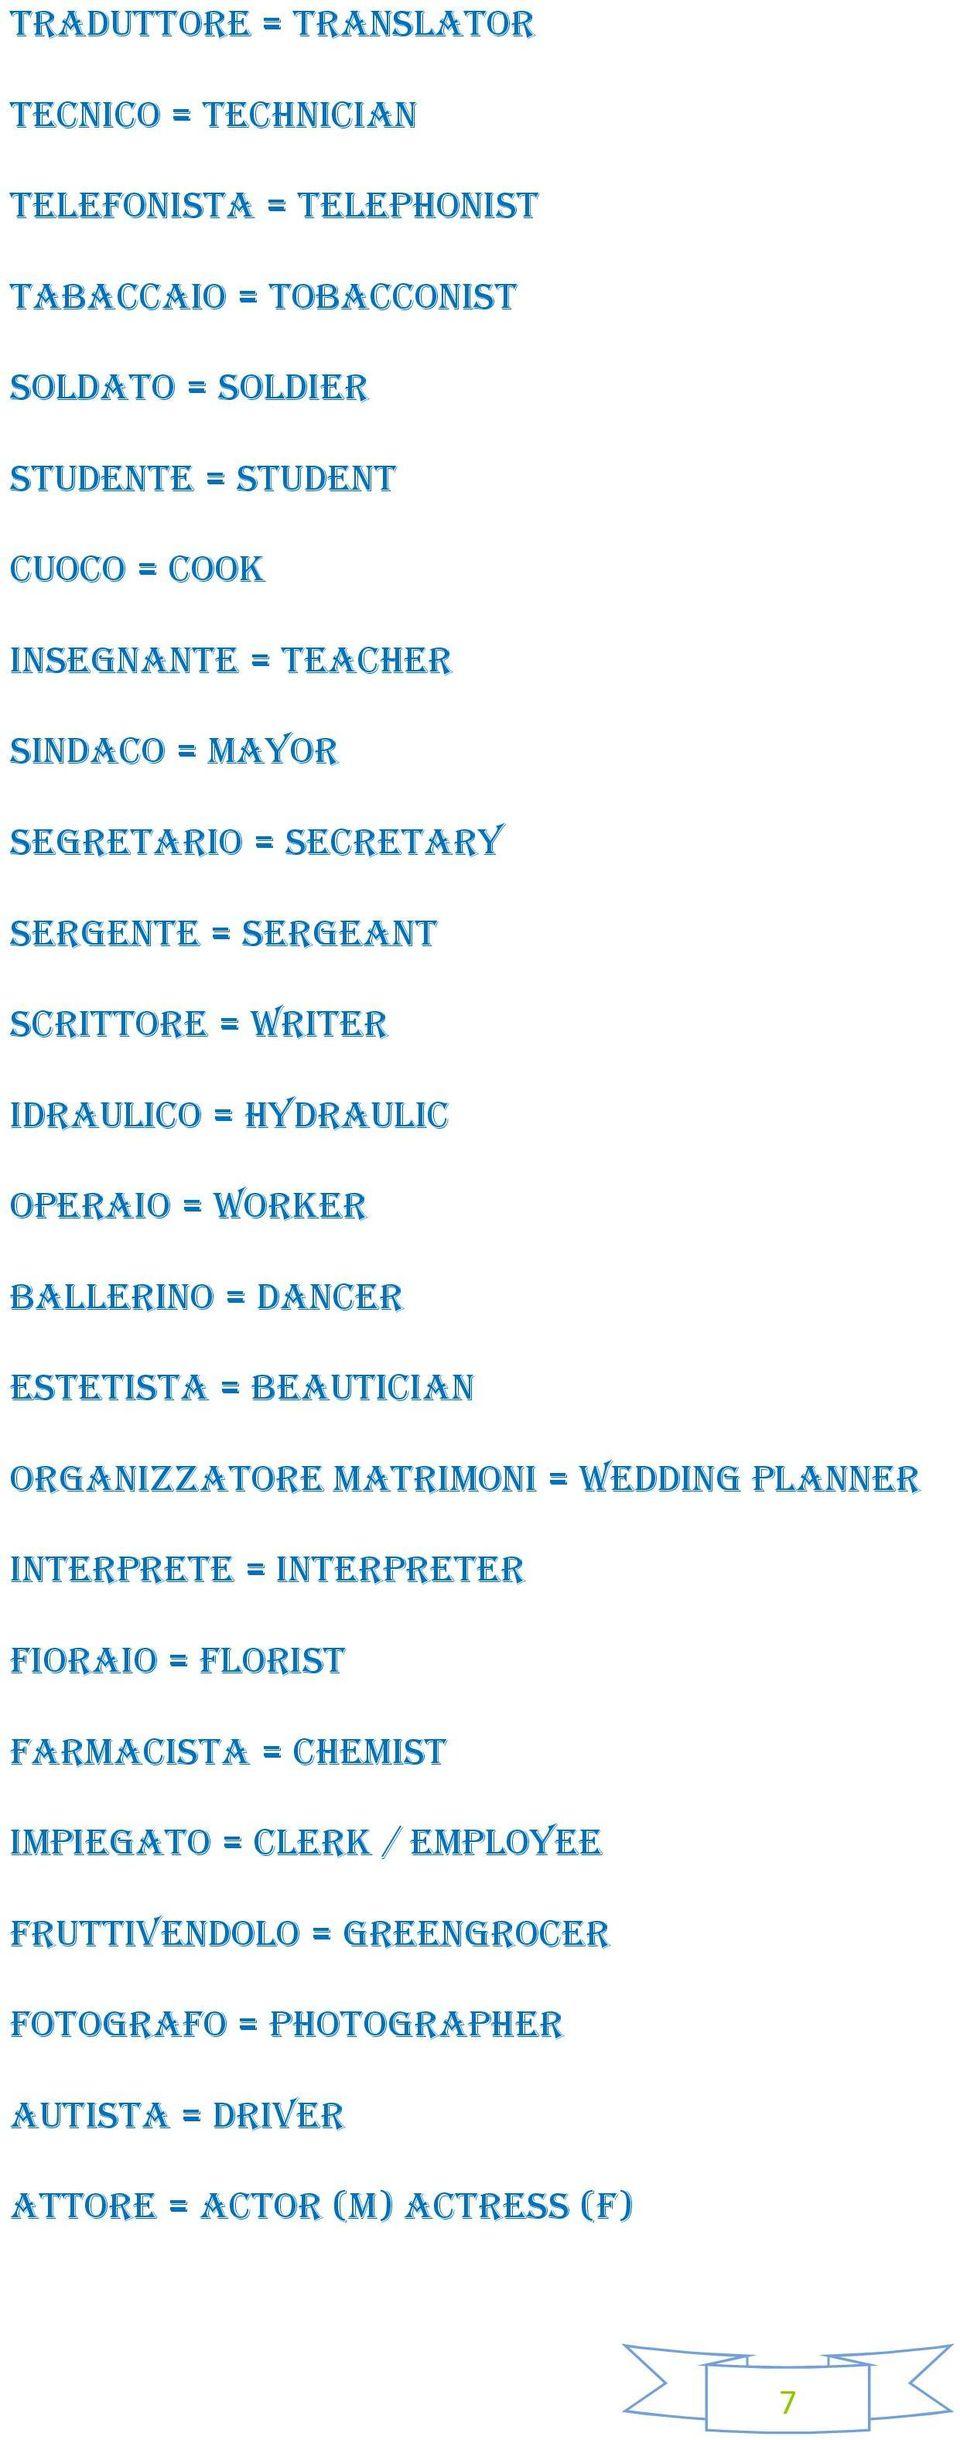 WORKER BALLERINO = DANCER ESTETISTA = BEAUTICIAN ORGANIZZATORE MATRIMONI = WEDDING PLANNER INTERPRETE = INTERPRETER FIORAIO = FLORIST